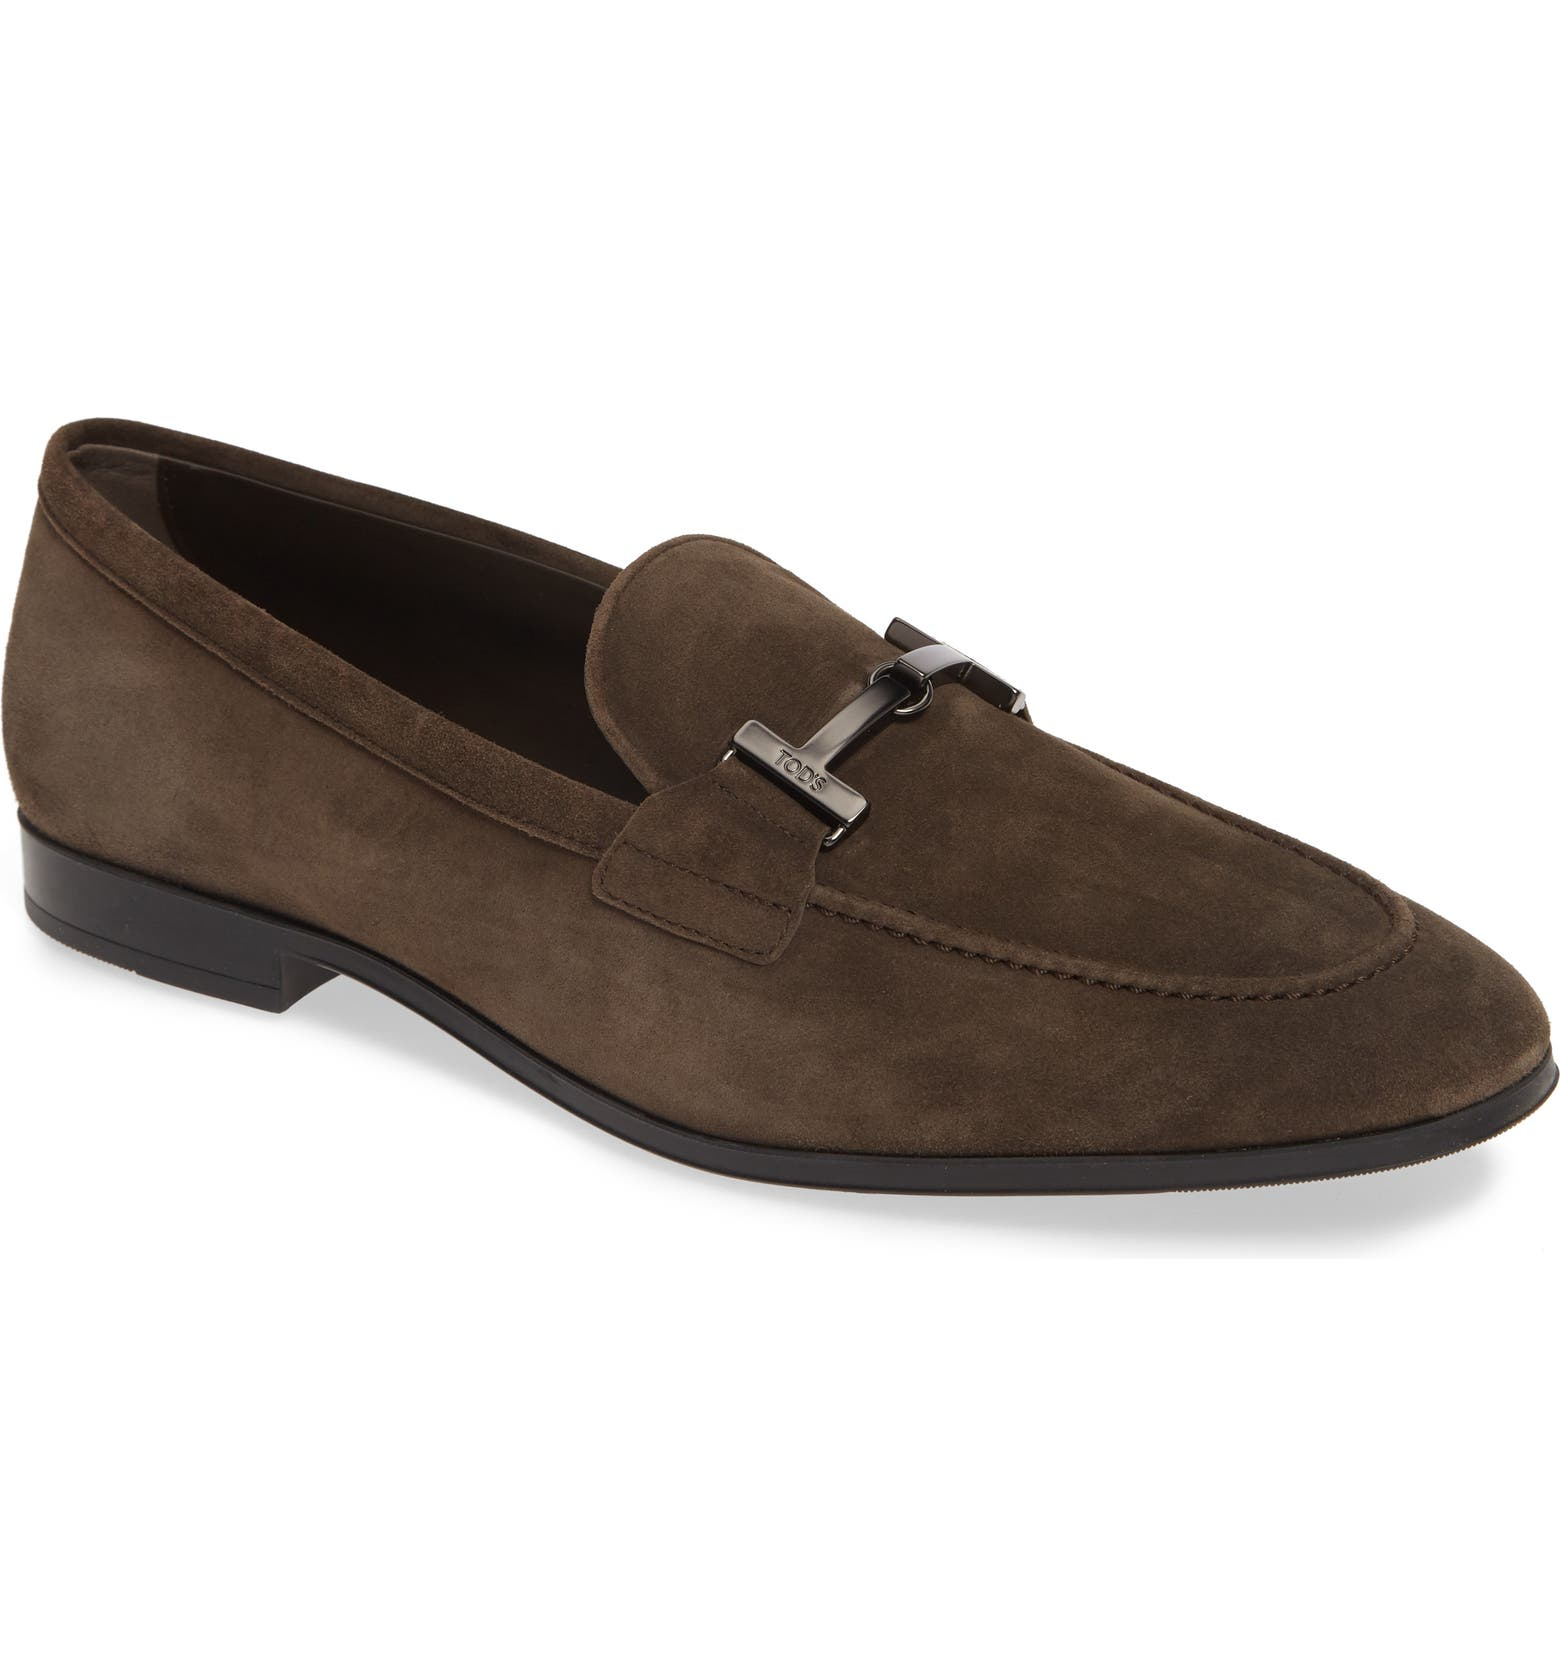 Double-T Bit Loafer TOD'S